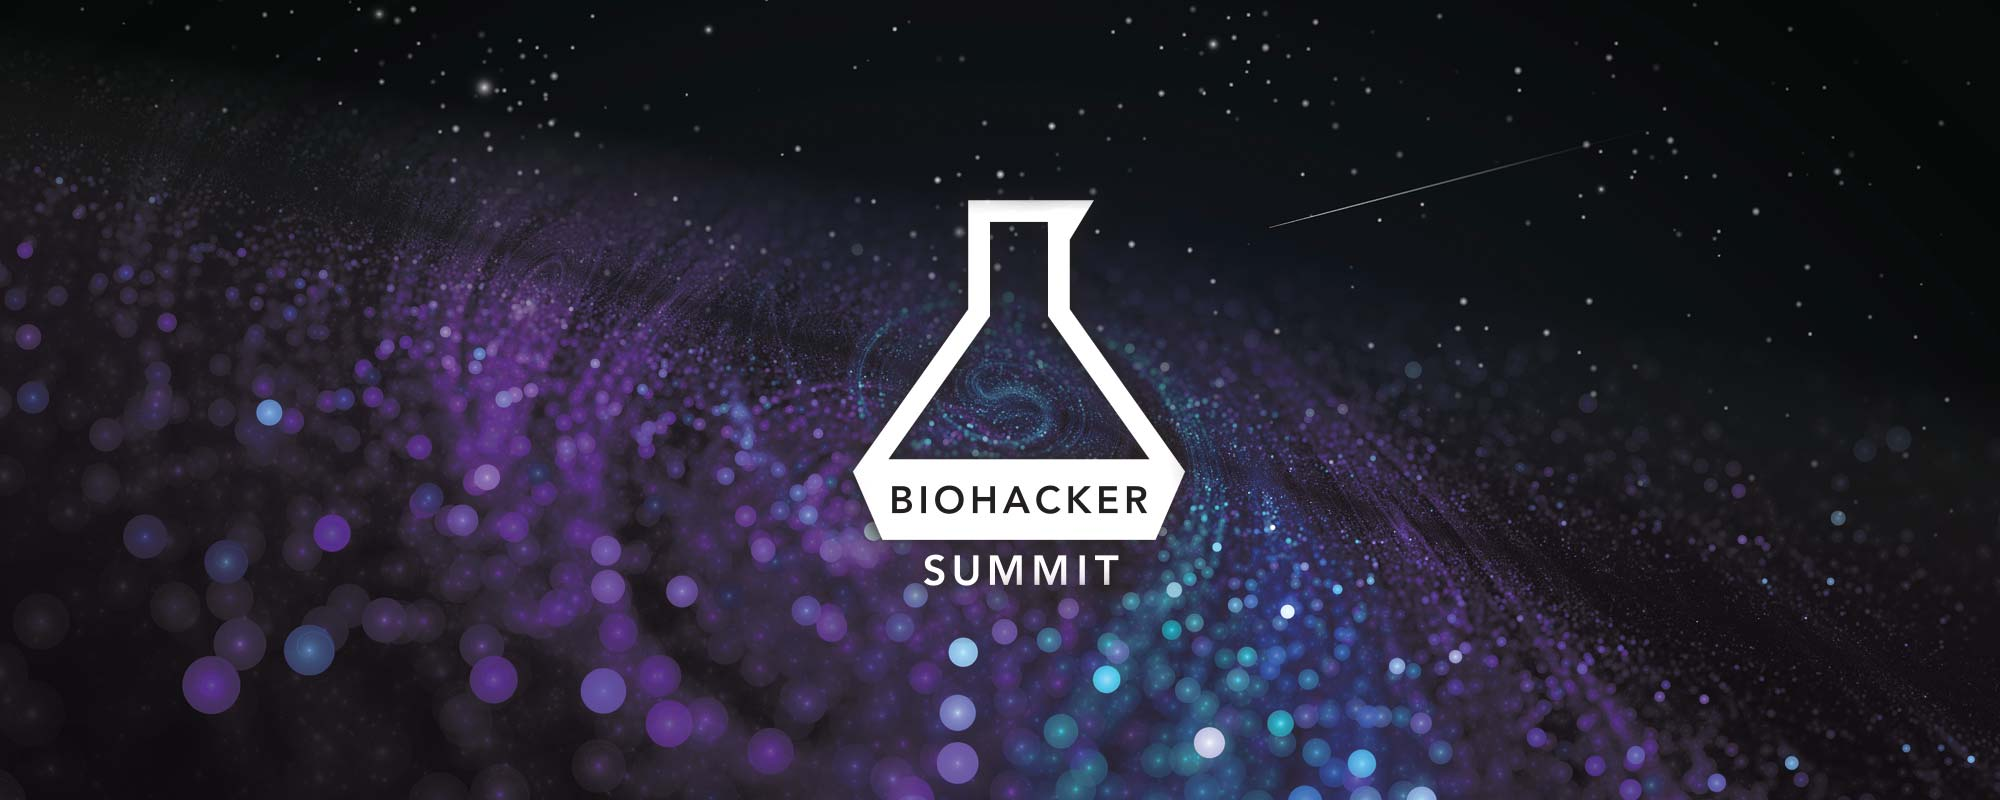 biohacker summit_Naava